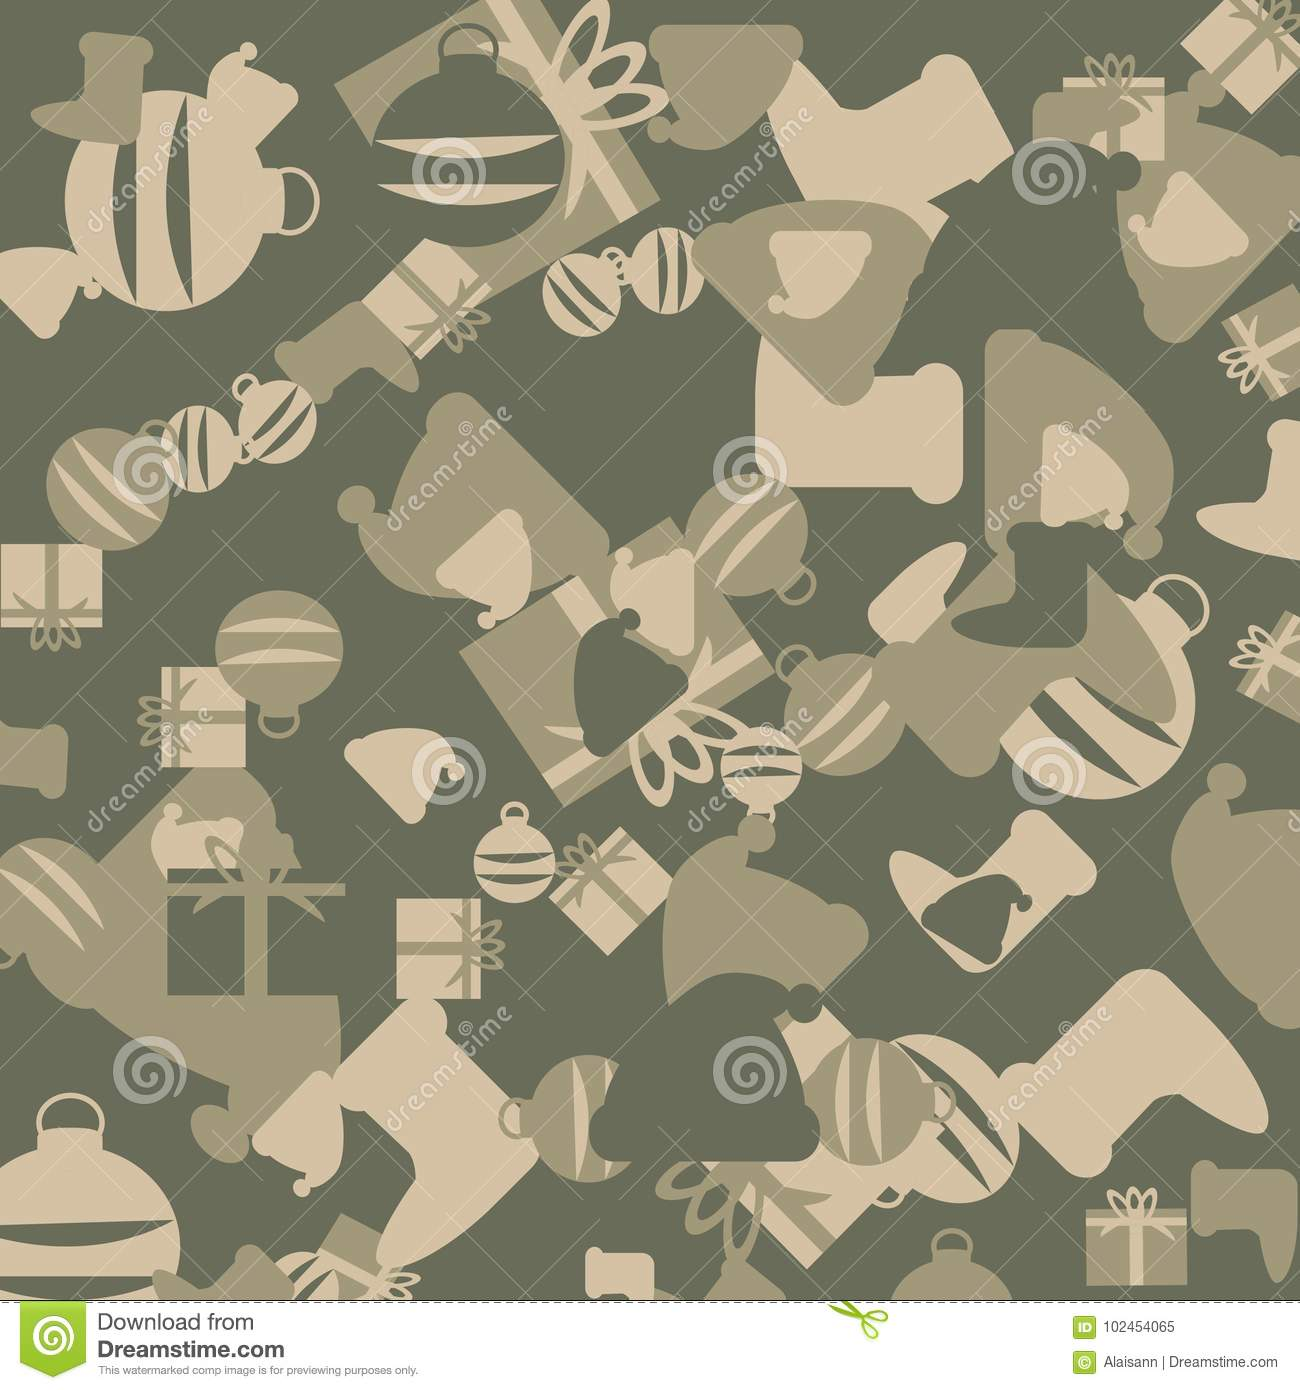 Green And Beige Christmas Camouflage With Images Of Gifts Stock ...